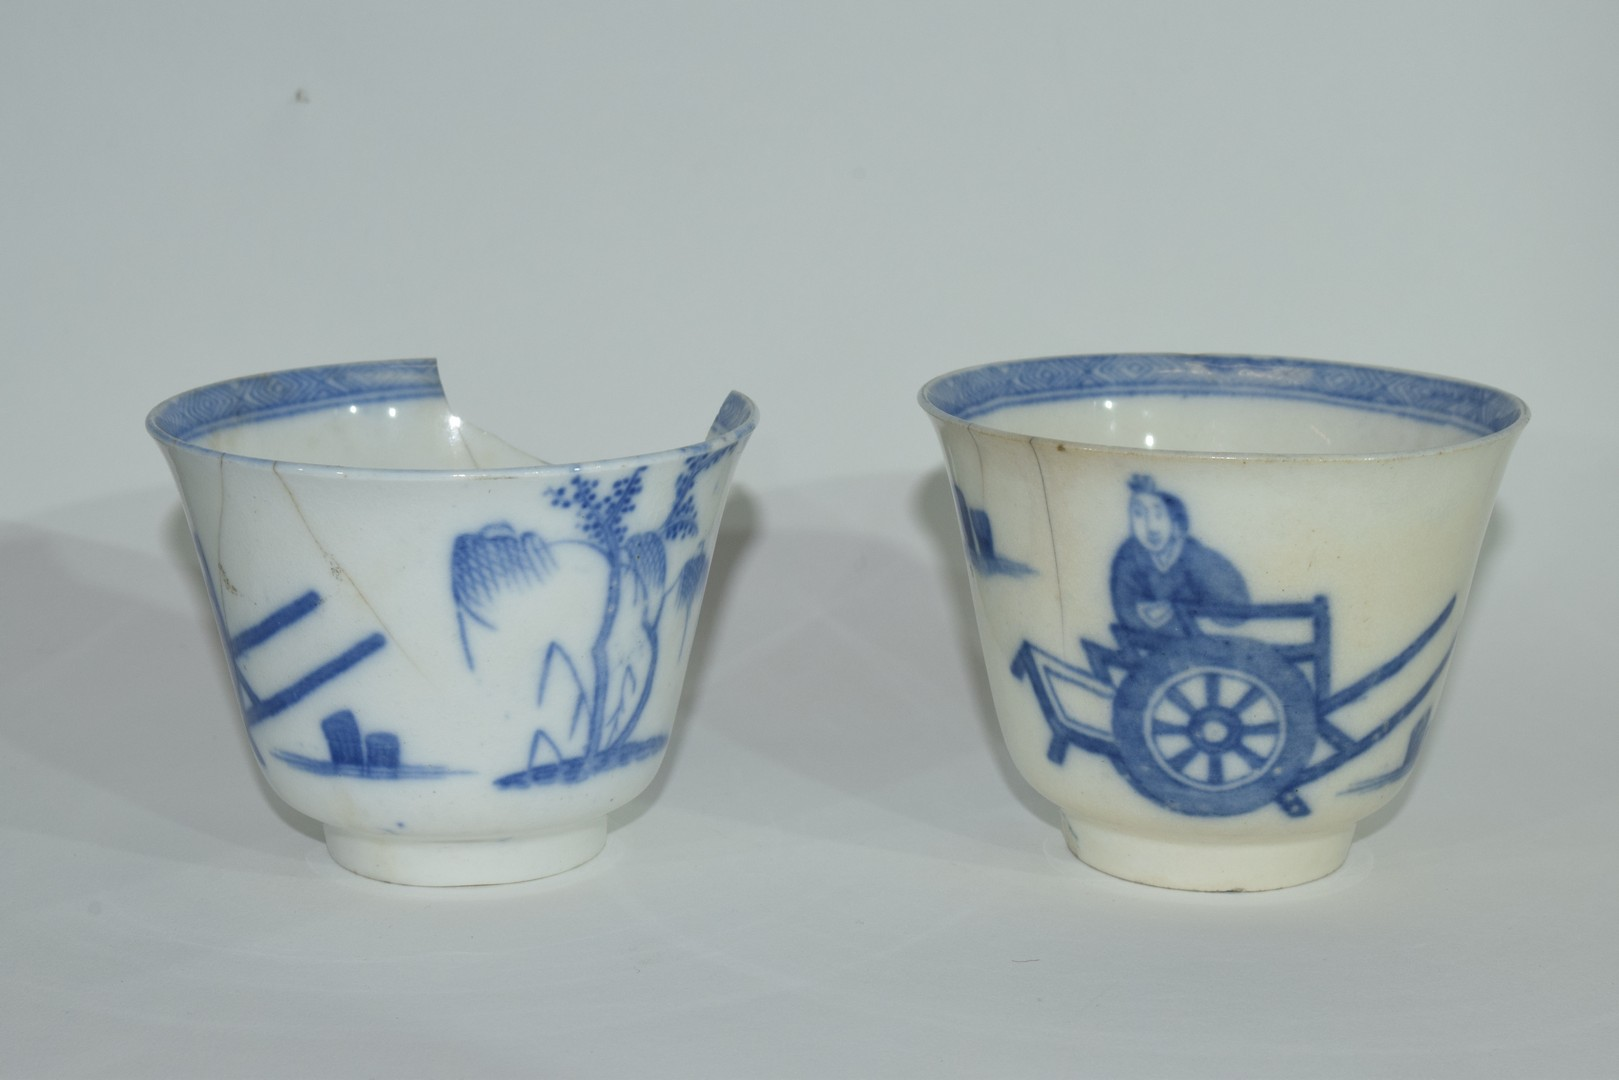 Group of Chinese export porcelain plates - Image 5 of 15